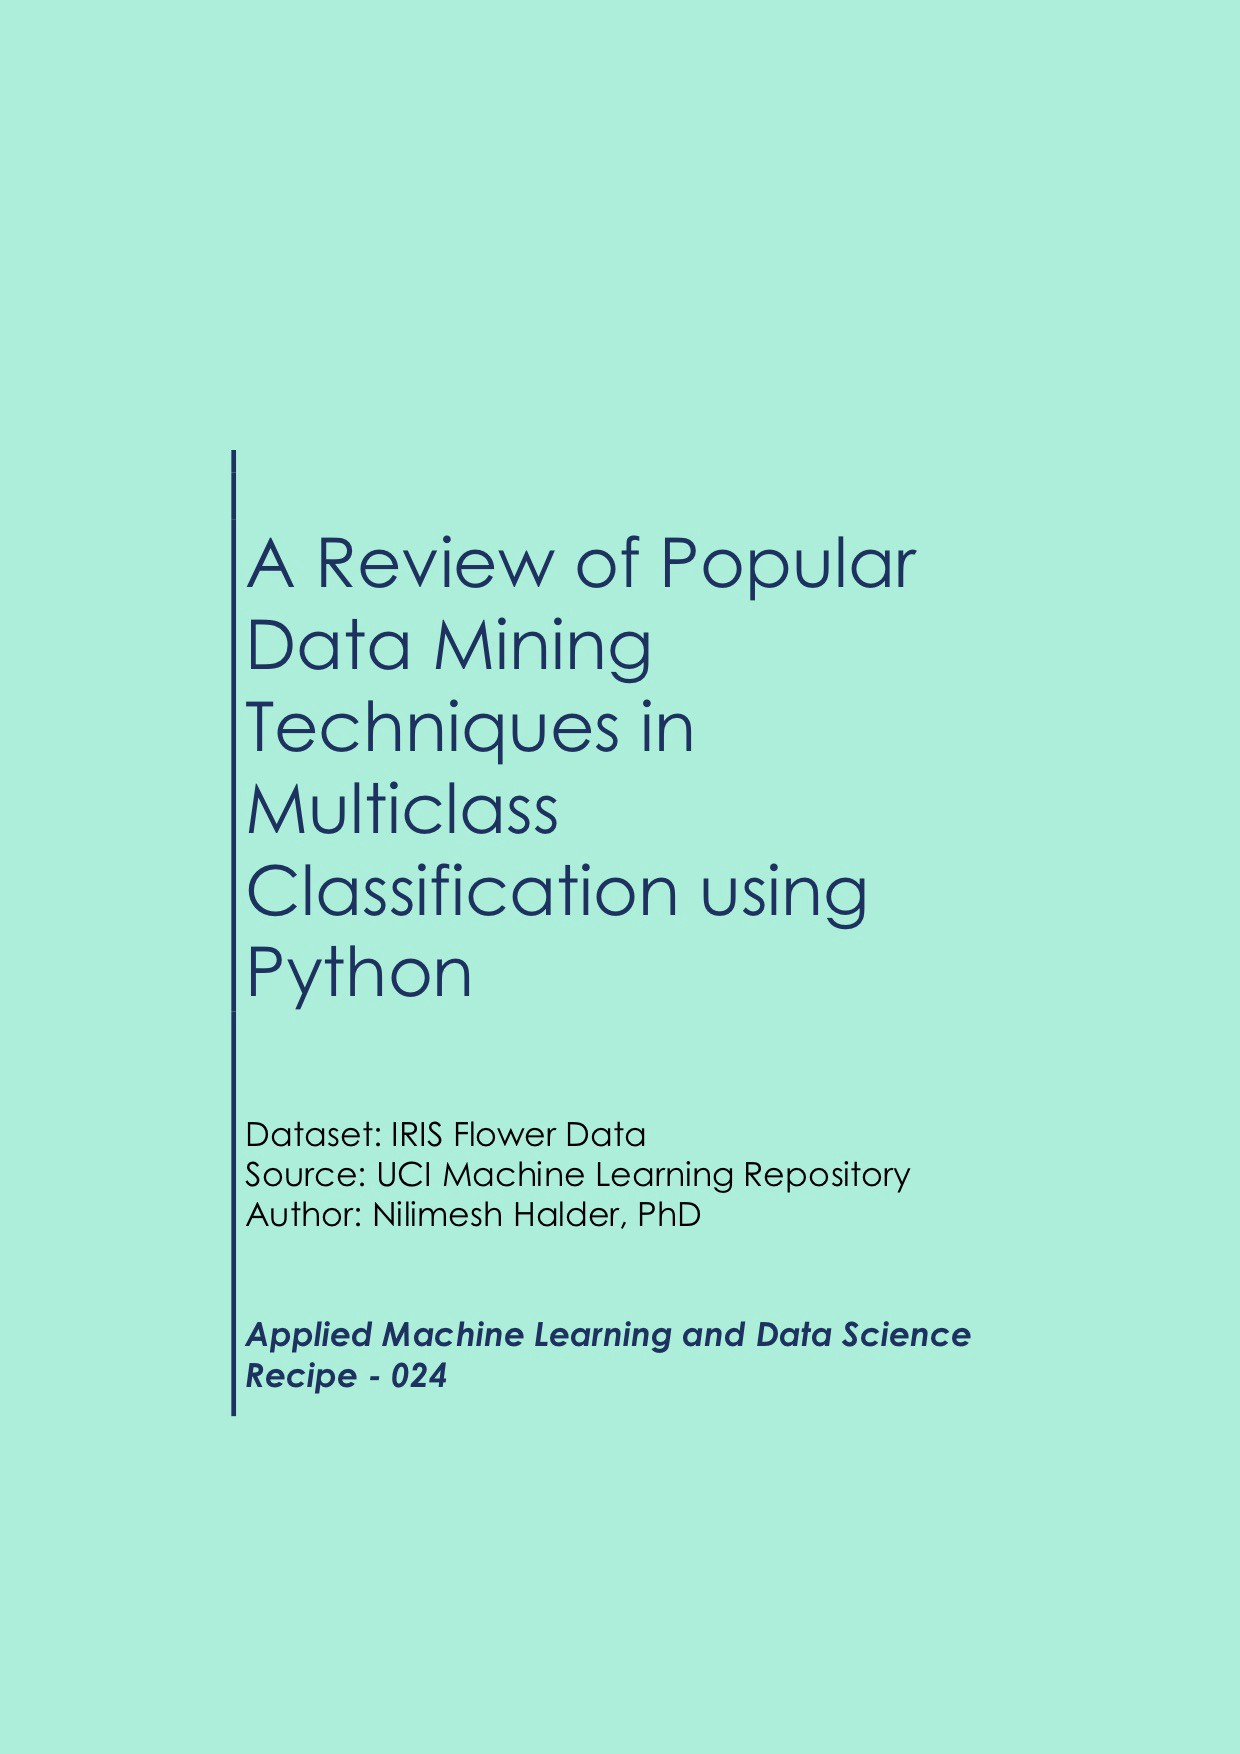 A Review of Popular Data Mining Techniques in Multiclass